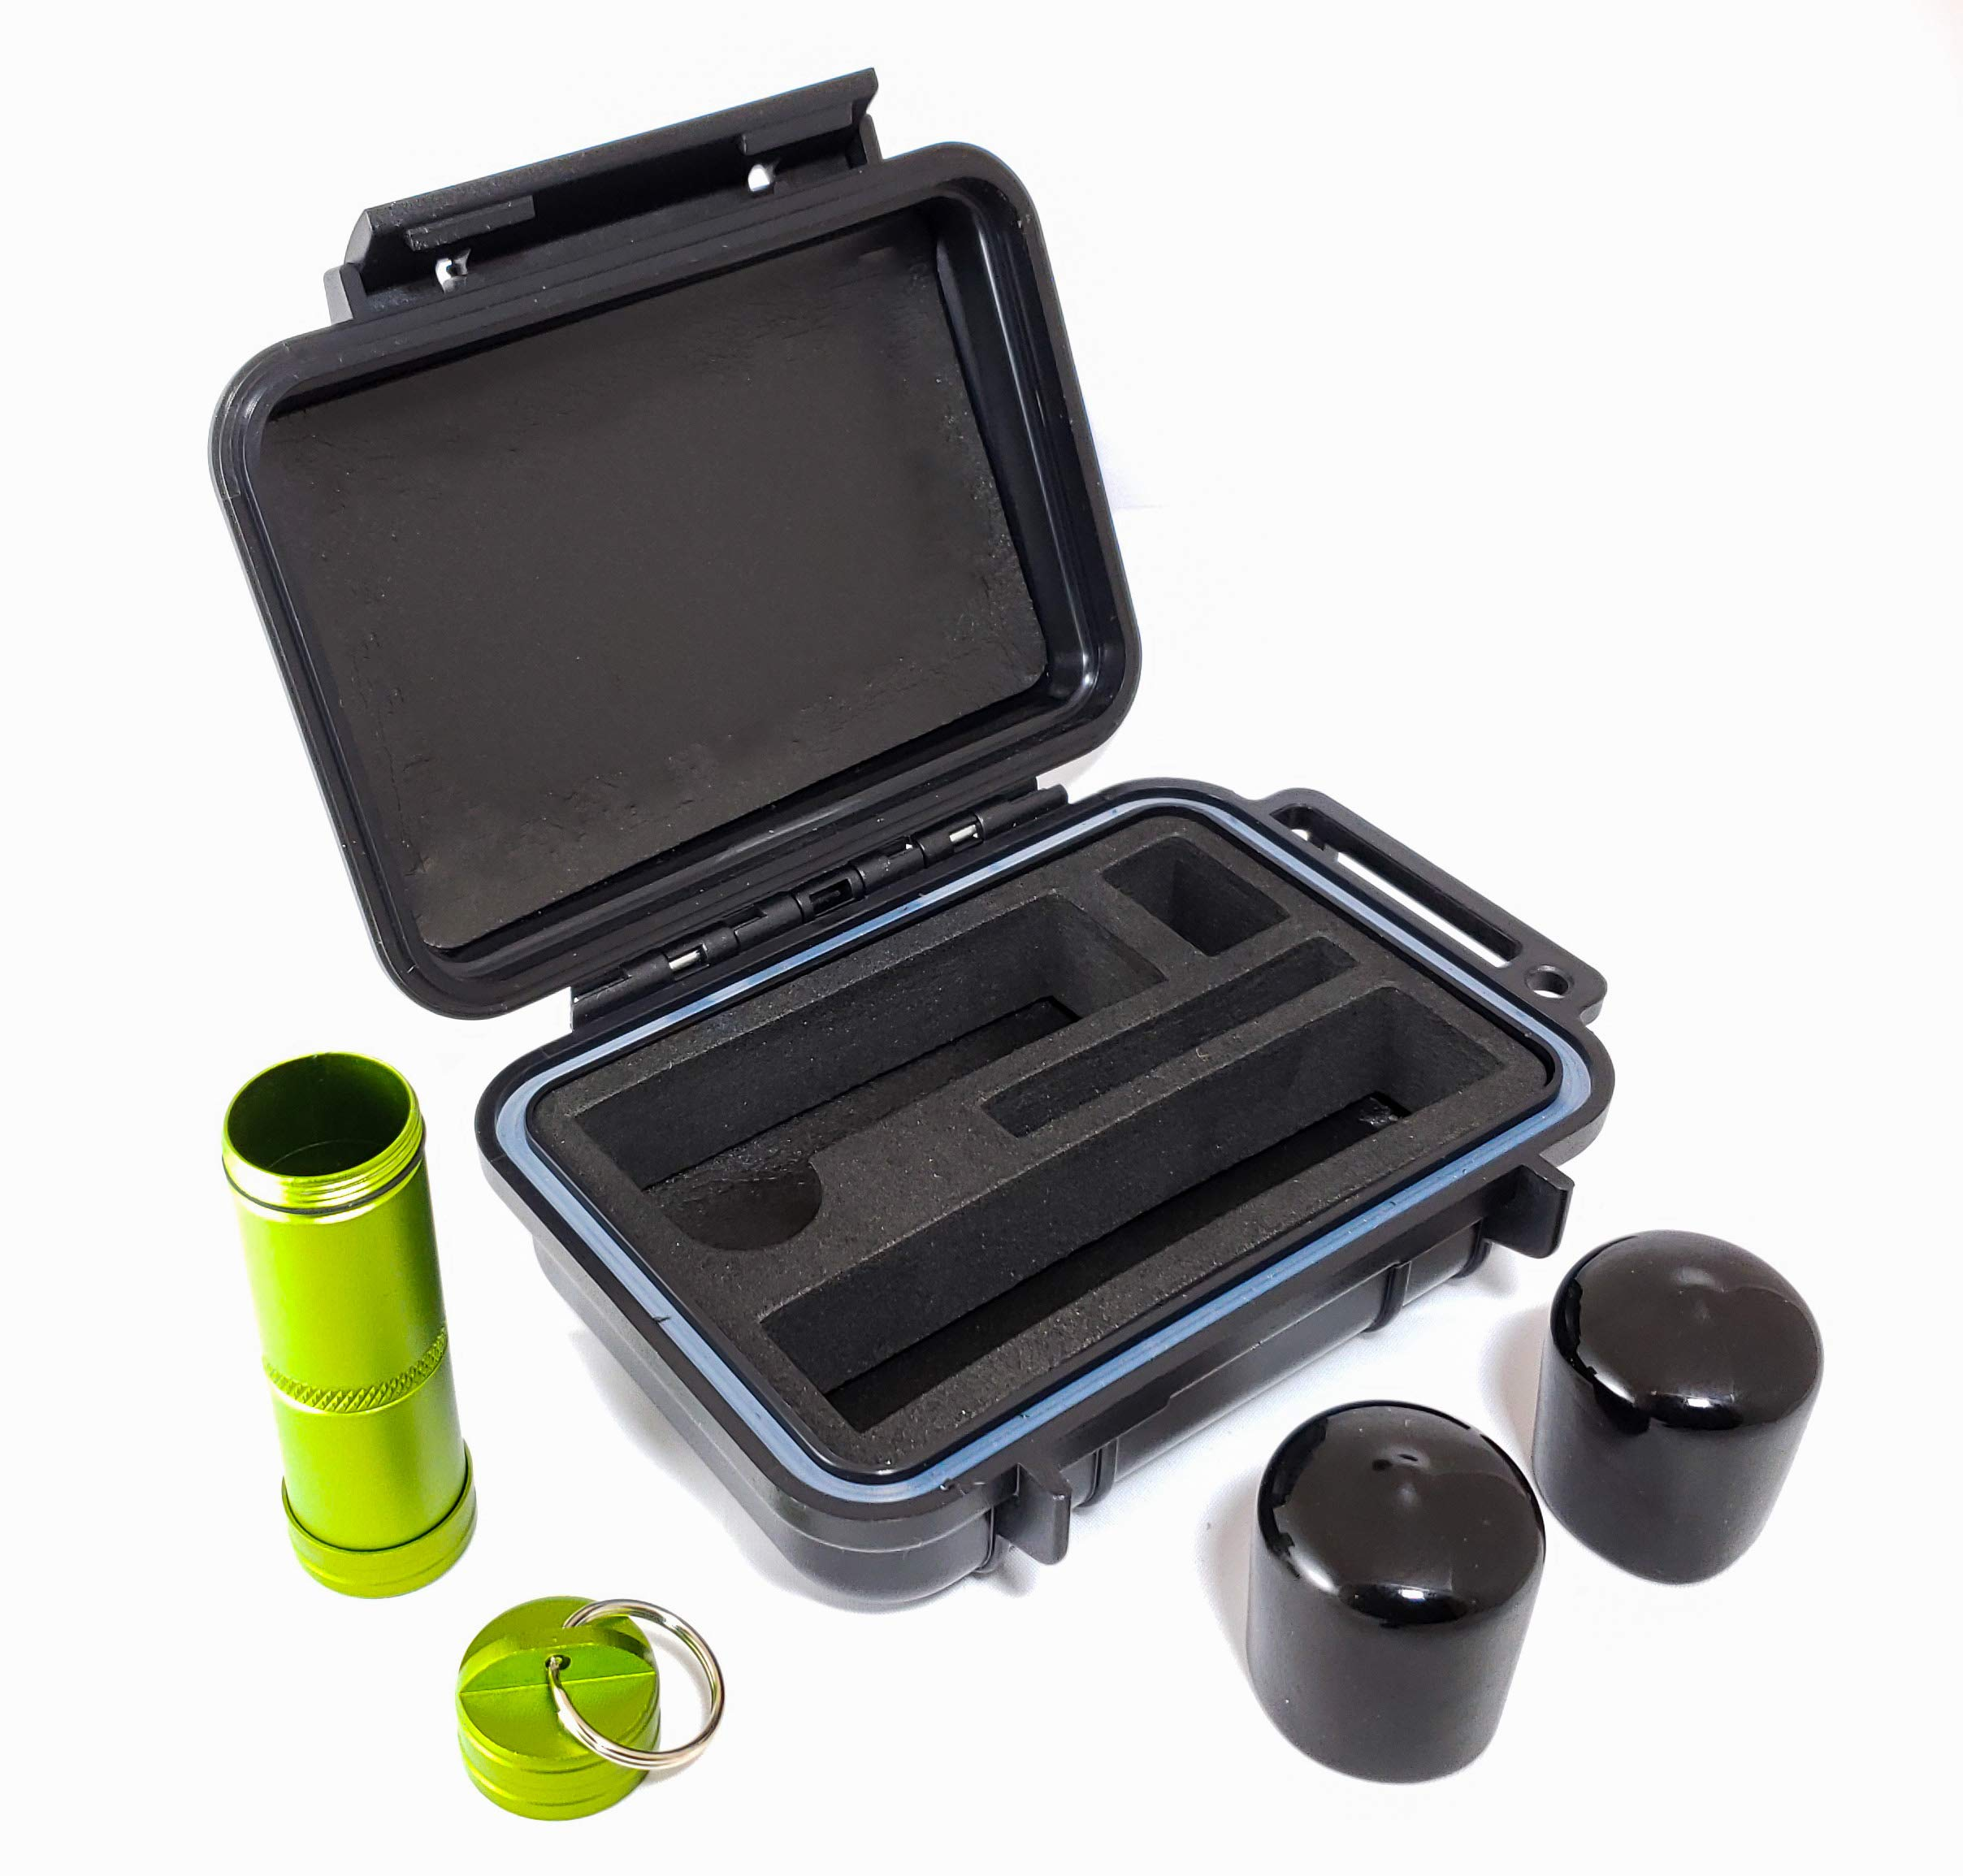 BOMBER CASE - Pax 2 & Pax 3 Smell Proof Case - Includes Material Bottle and Odor Proof Bumper End Caps - Accessory Kit